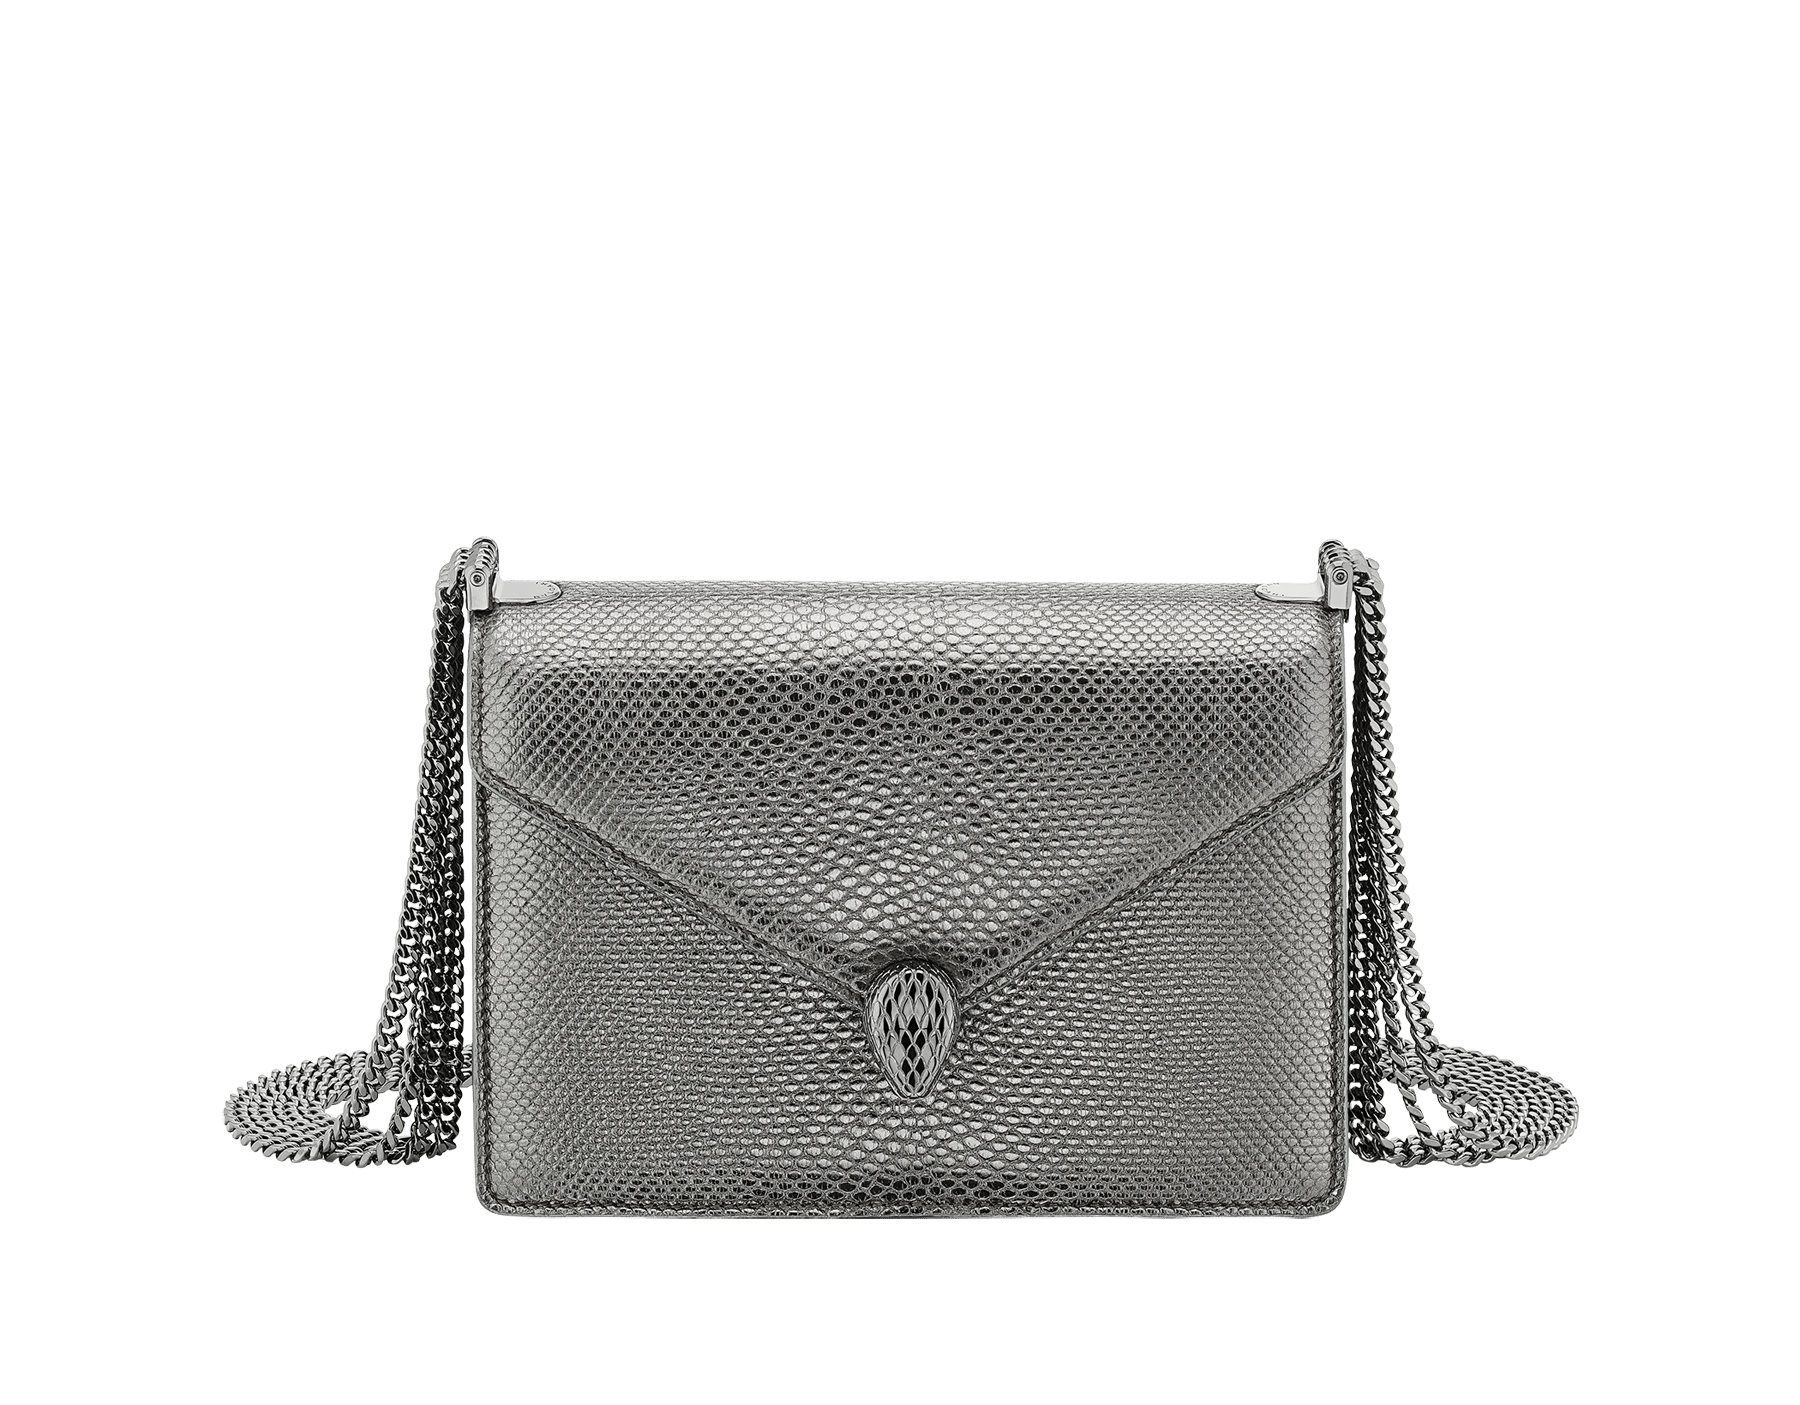 """Serpenti Forever"" multichain shoulder bag in ""Molten"" Charcoal Diamond grey karung skin with black nappa leather inner lining, offering a touch of radiance for the Winter Holidays. New Serpenti head closure in dark ruthenium-plated brass, complete with ruby-red enamel eyes. 290543 image 1"